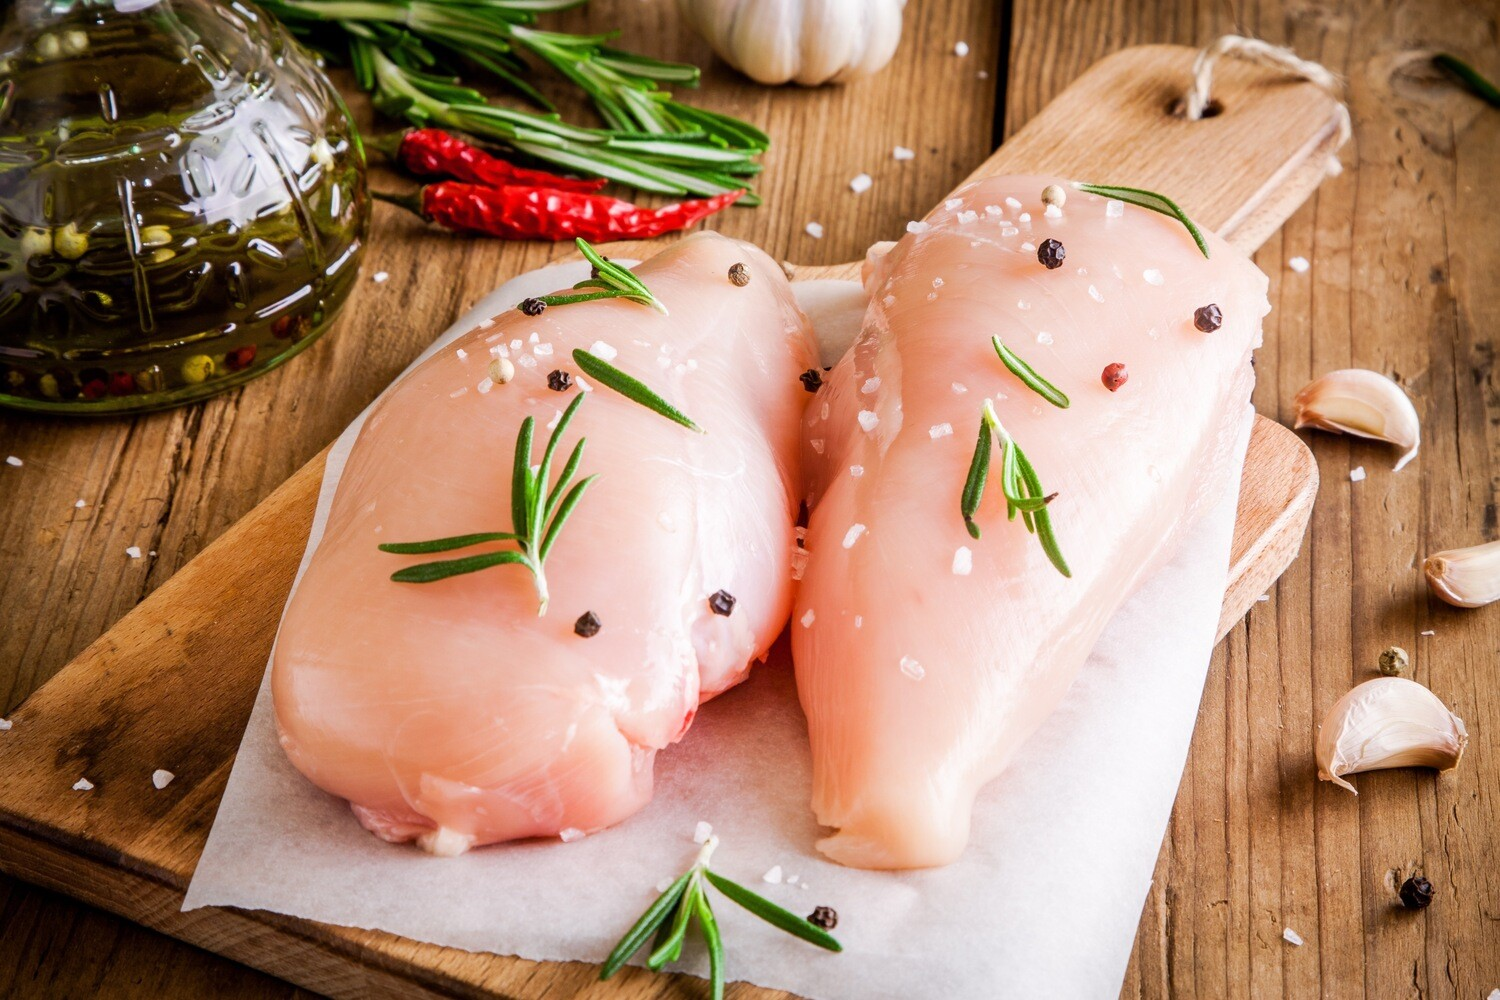 5oz Murray's ORGANIC Trimmed Chicken Cutlets (Sold in 4PK)